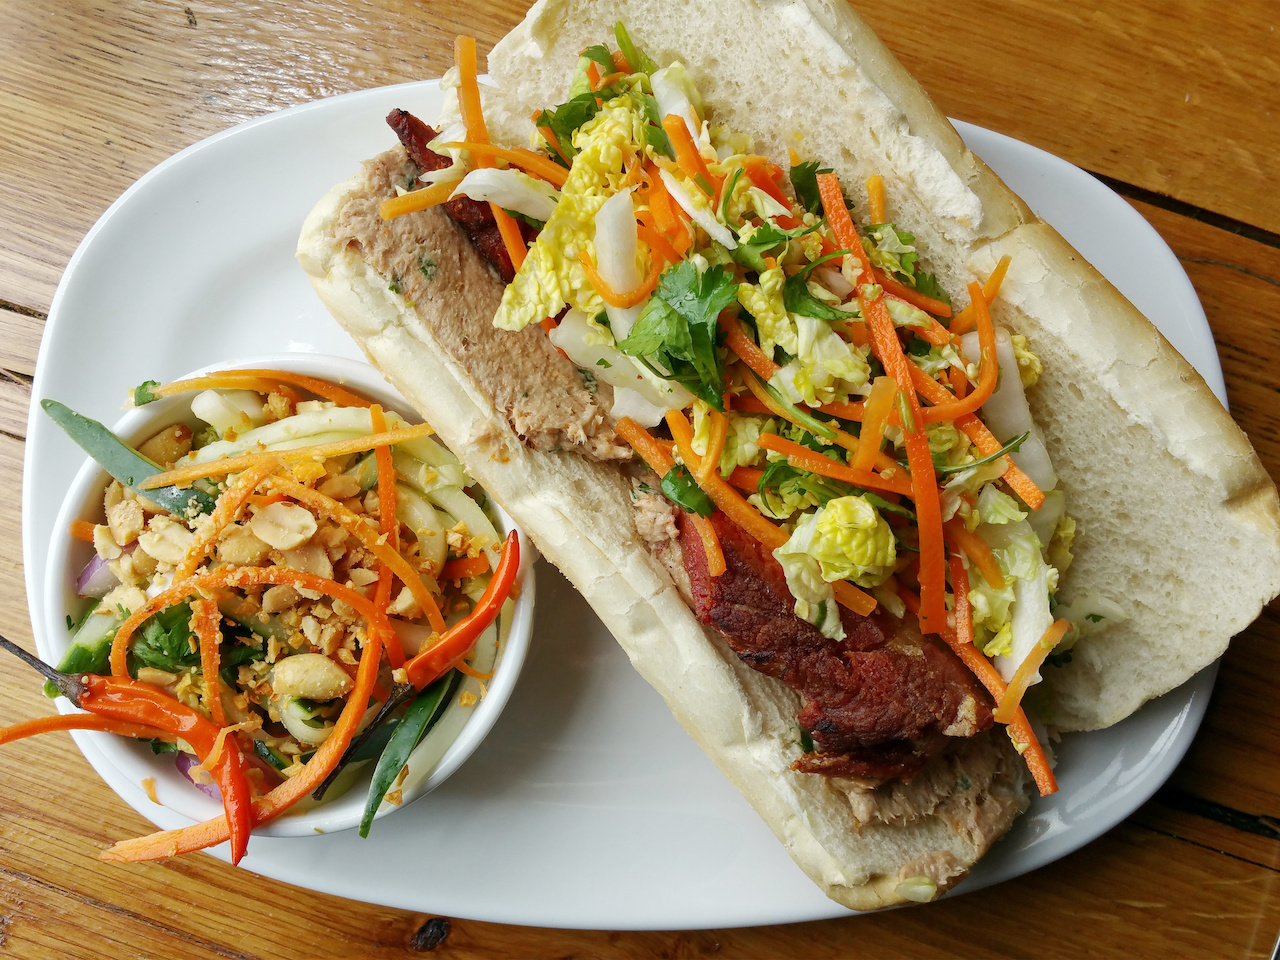 Pork belly bahn mi on crispy bread with bright crunchy veggies